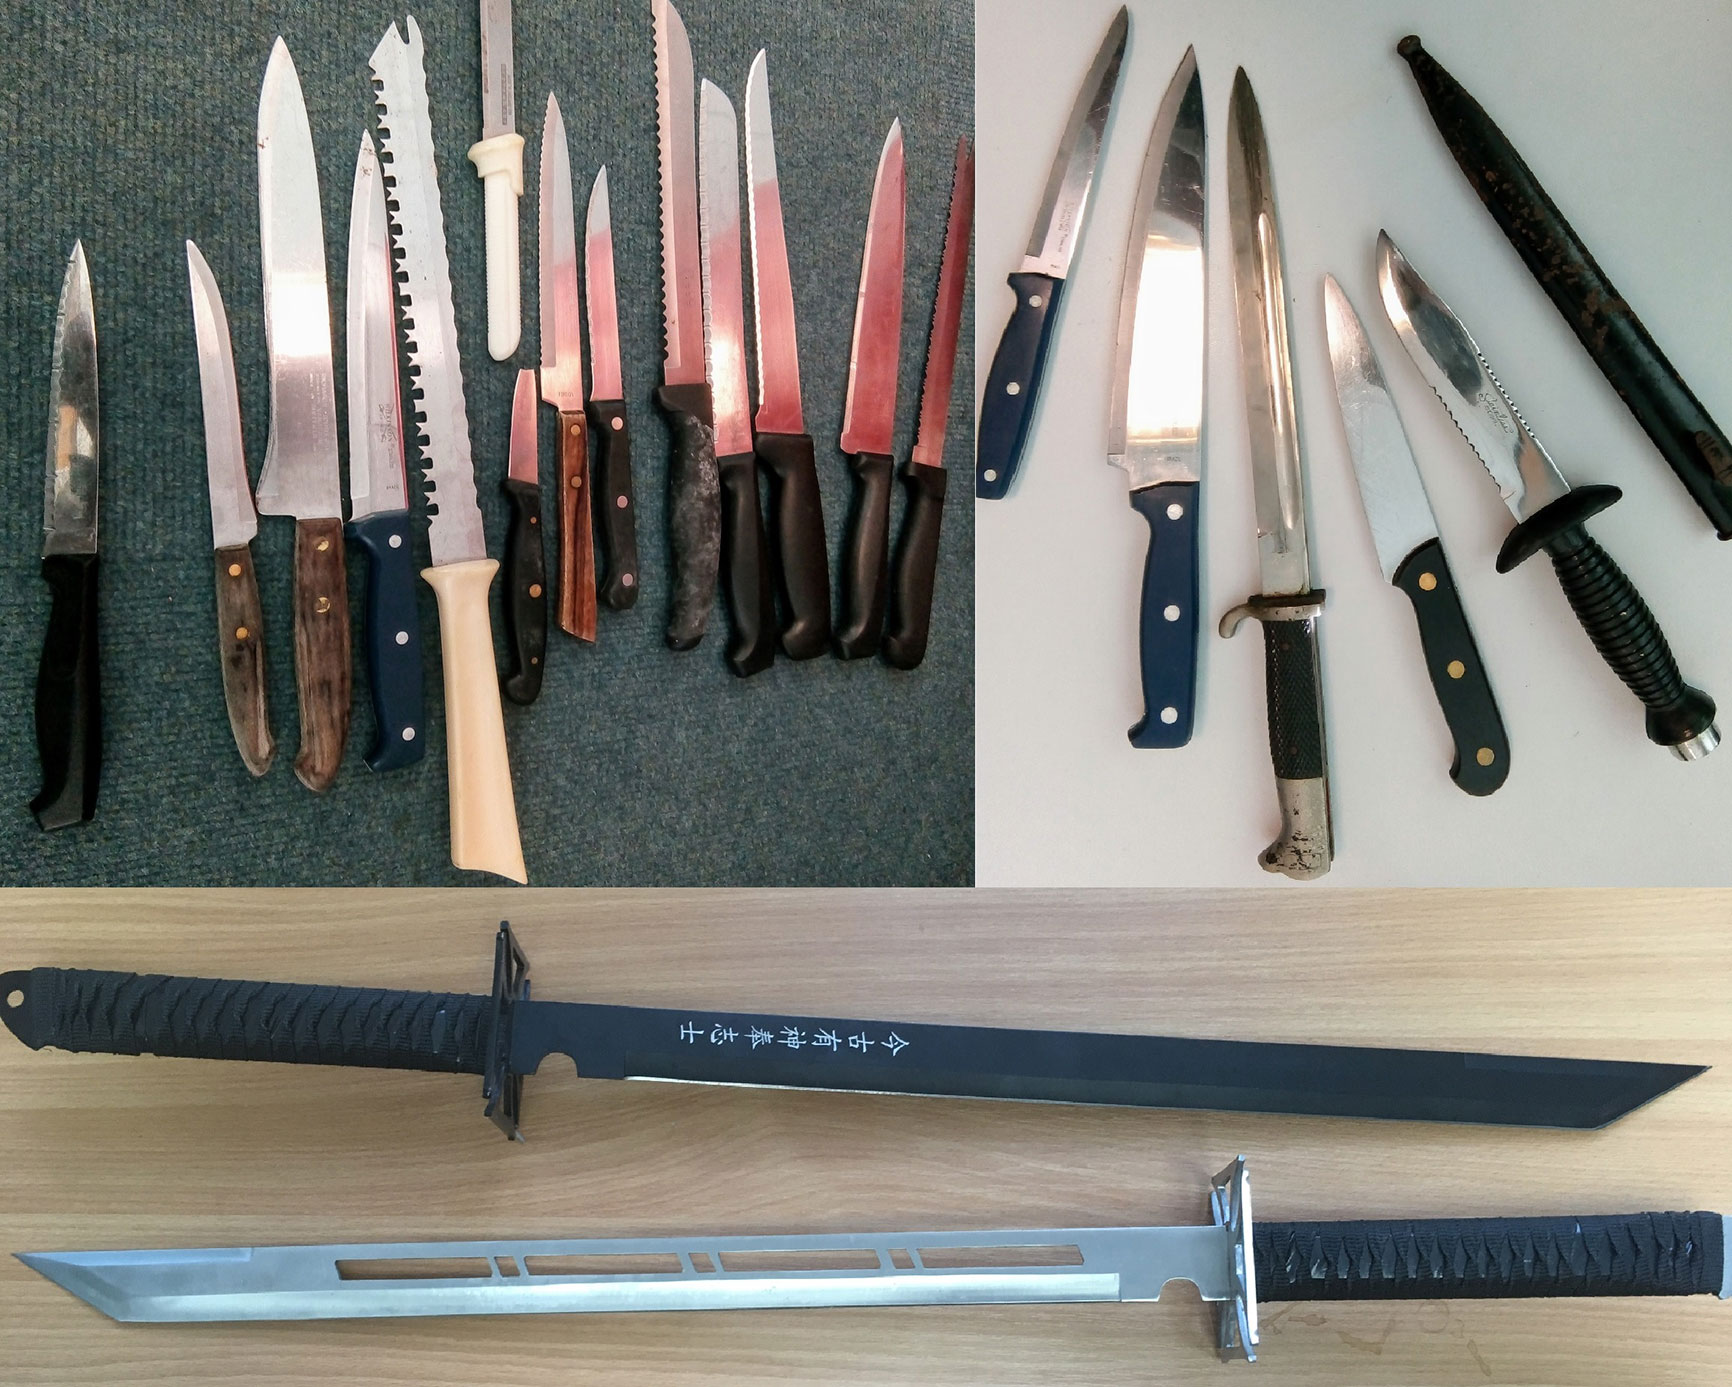 Dorset Police knife amnesty